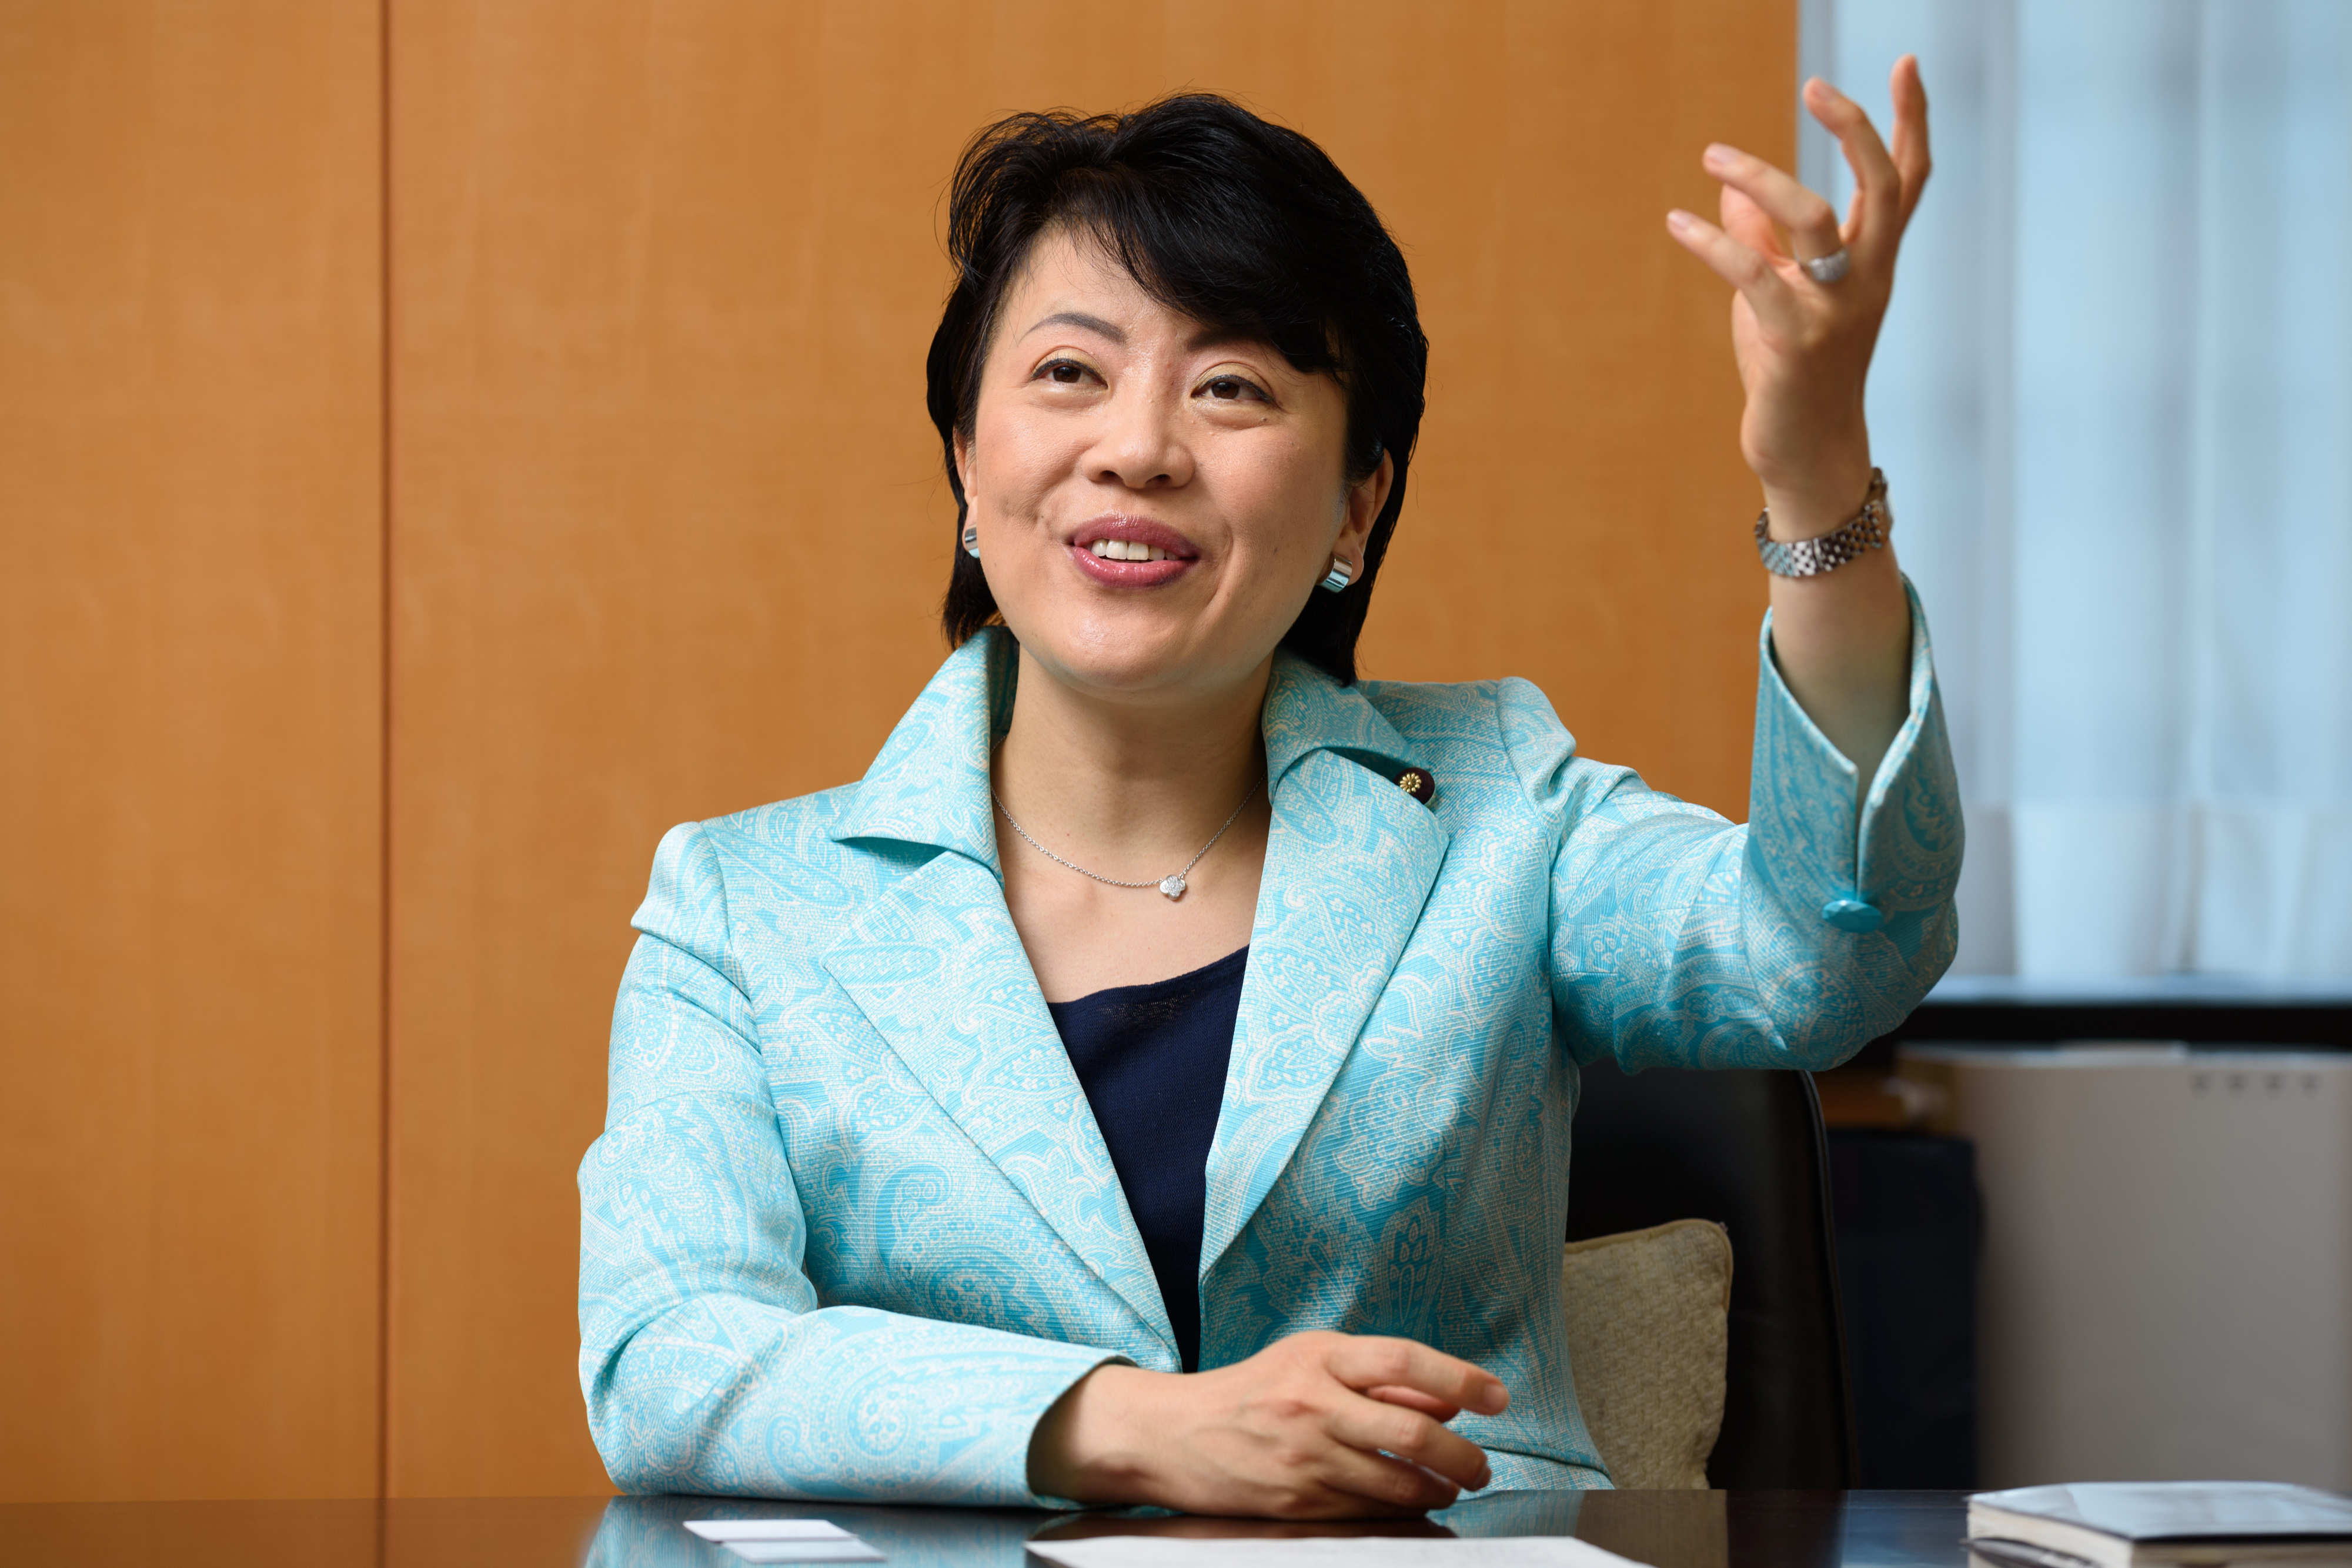 Japan's Minister In Charge Of Gender Reform Haruko Arimura Interview